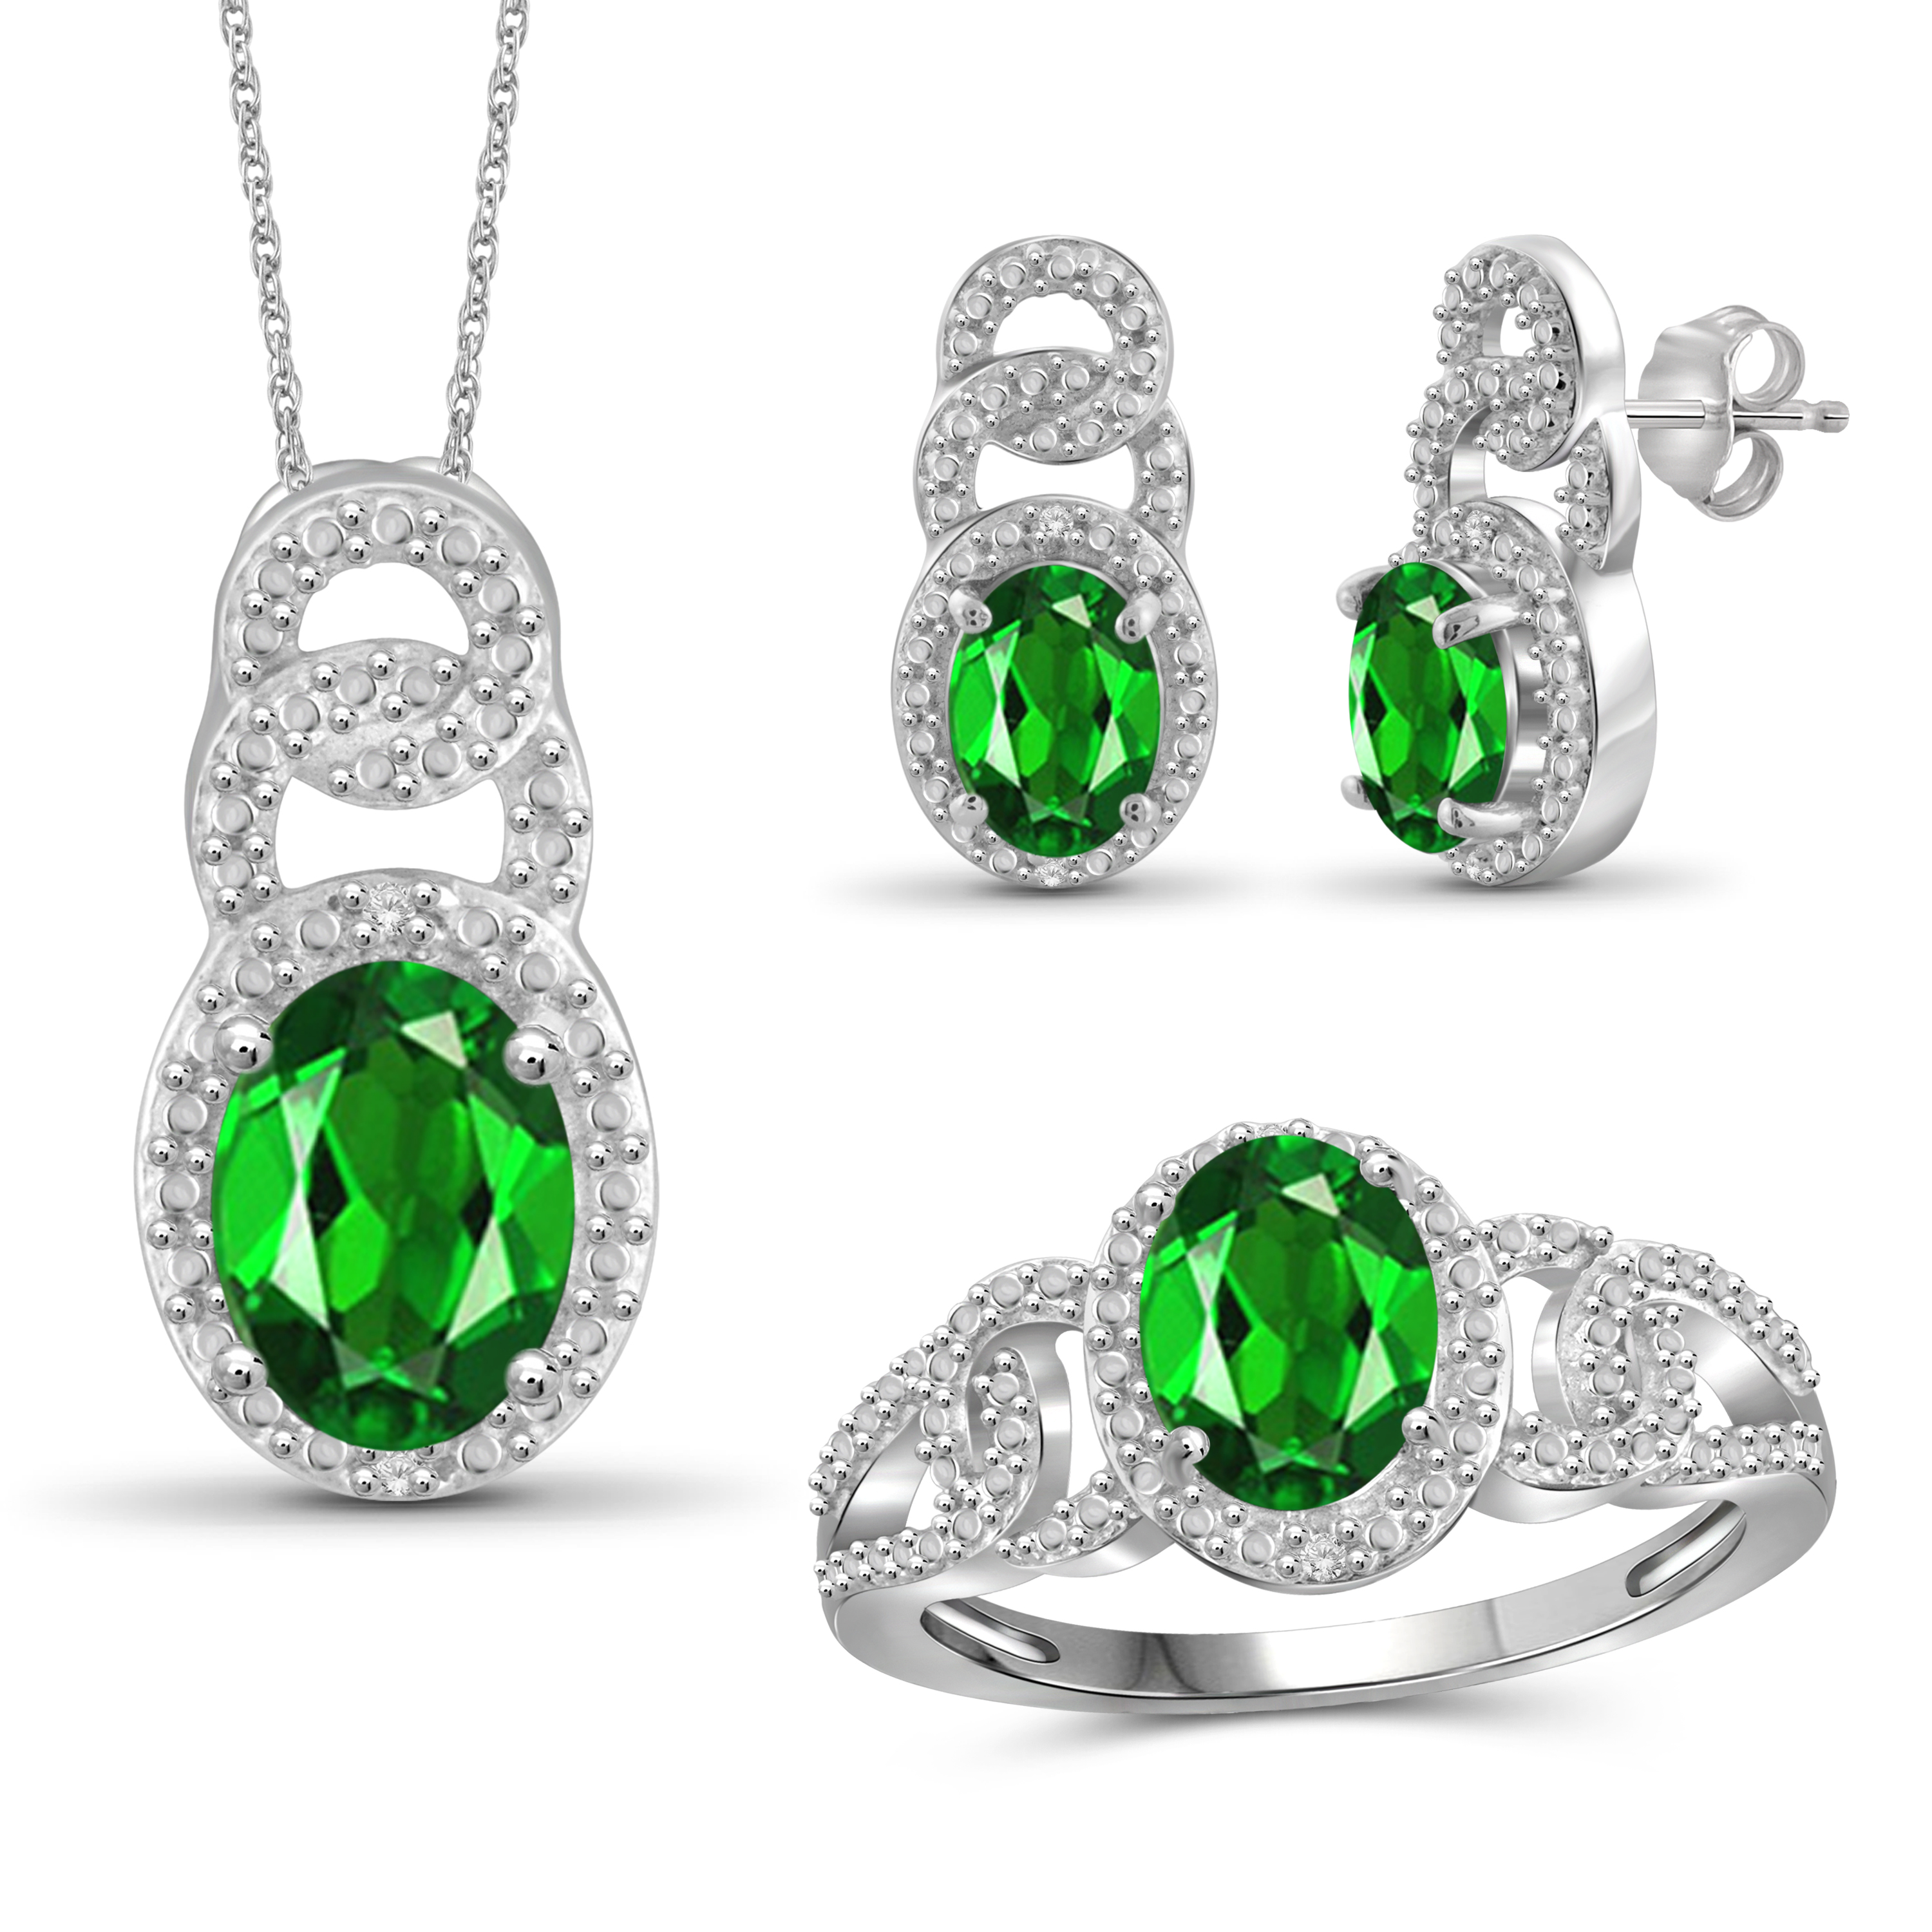 JewelersClub 4.00 Carat T.G.W. Chrome Diopside And White Diamond Accent Sterling Silver 3-Piece Jewelry set